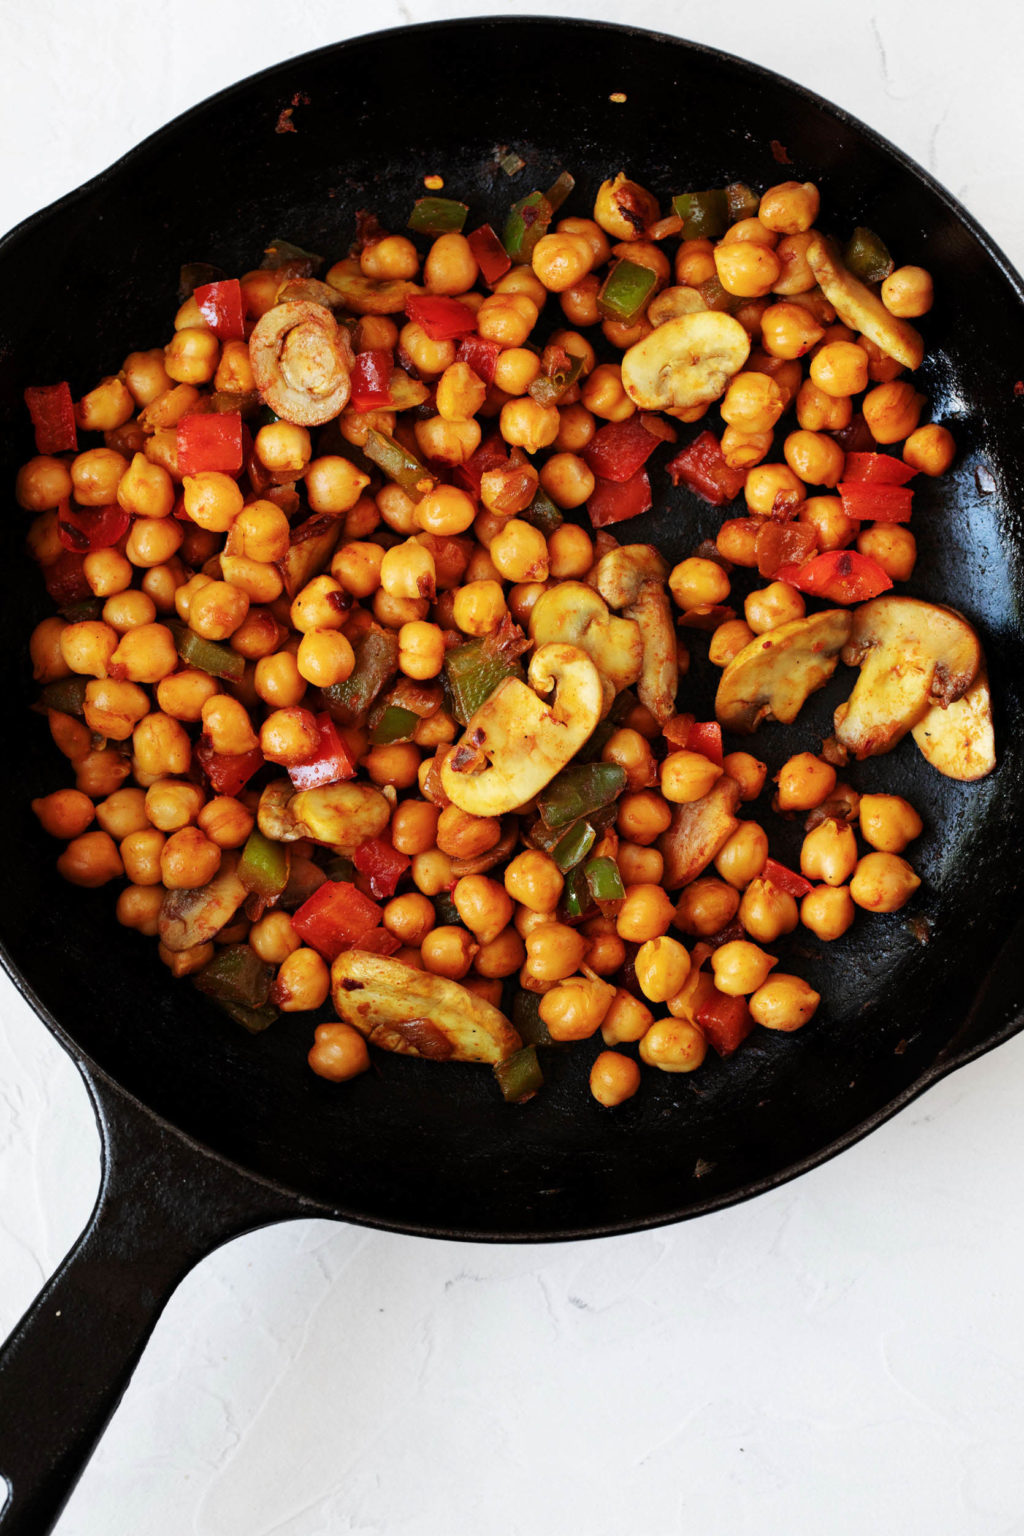 A black, cast iron skillet holds a mixture of sautéed vegetables and garbanzo beans.